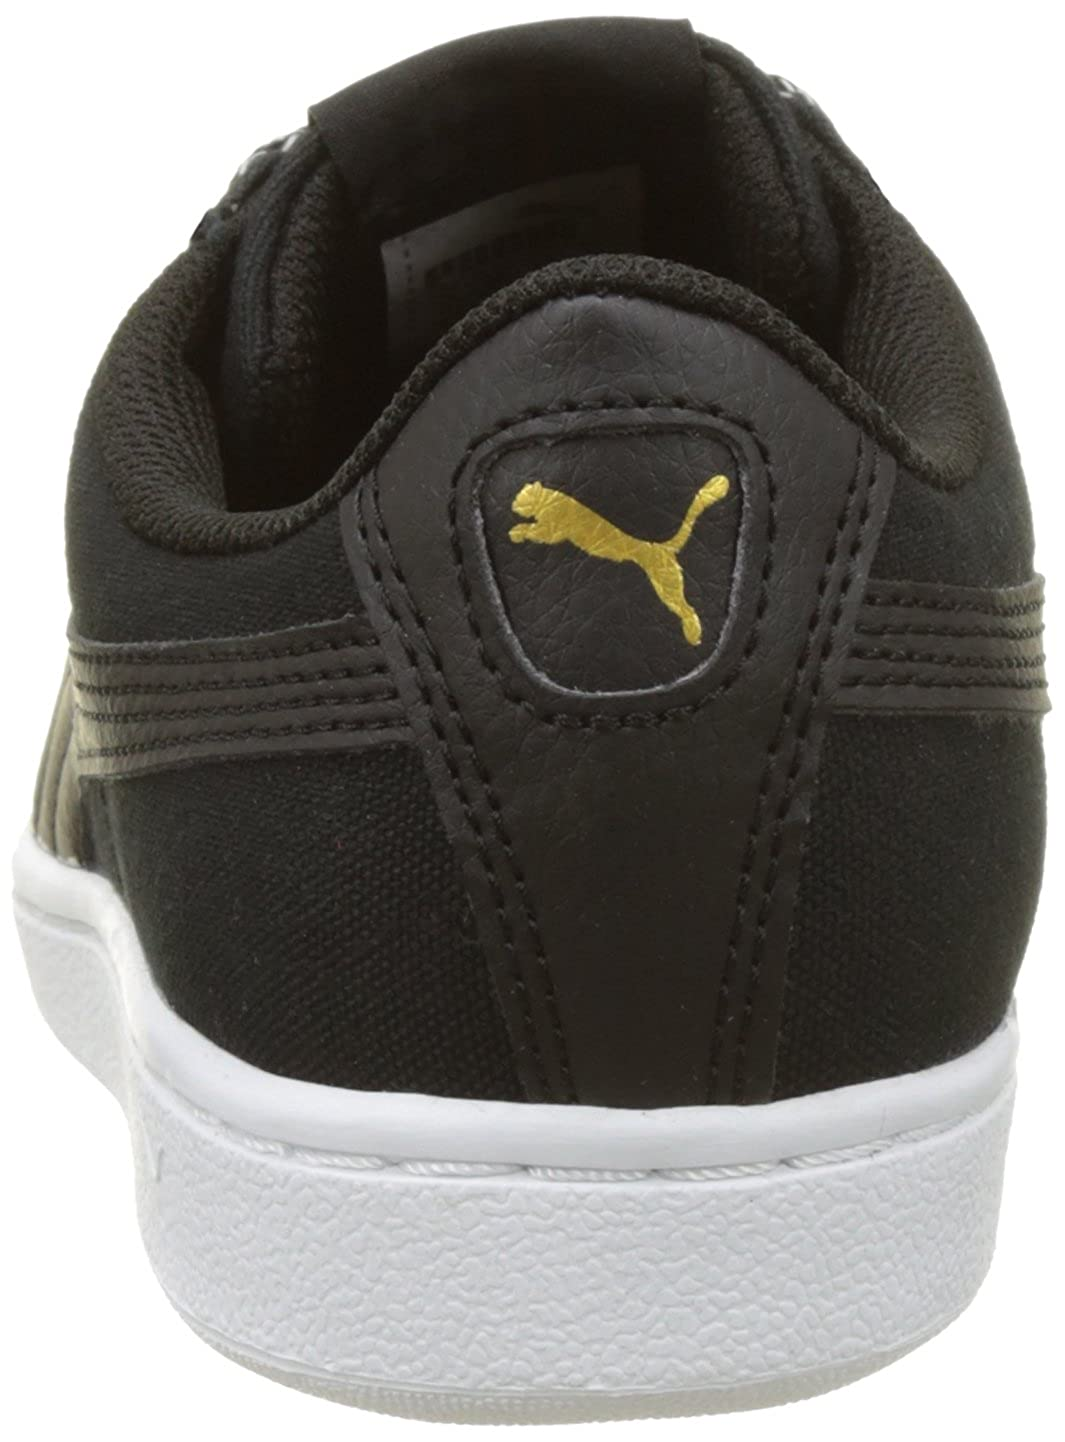 b6e993857d4 Puma Women s s Vikky Spice Low-Top Sneakers  Amazon.co.uk  Shoes   Bags